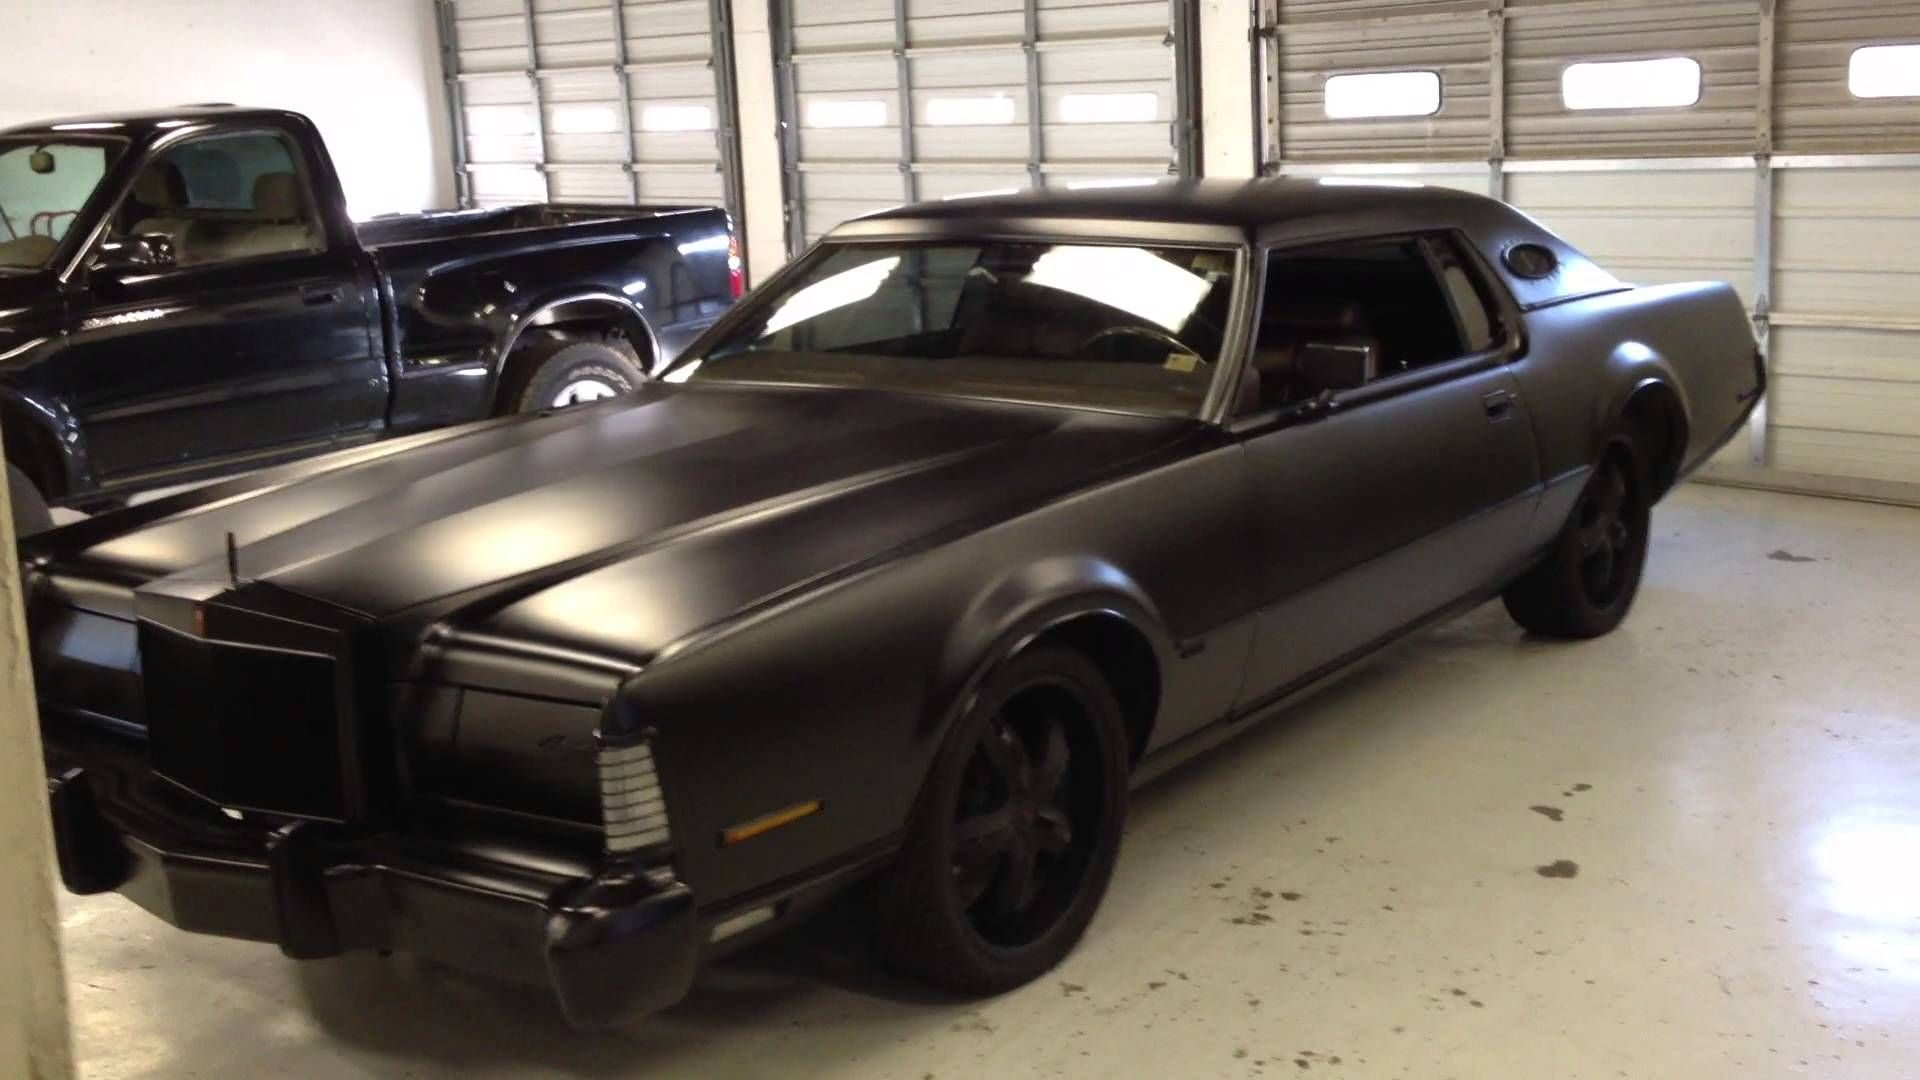 1236191d2b985c4d650b8454ea7946fc Fascinating Lincoln Continental Used In Hit and Run Cars Trend